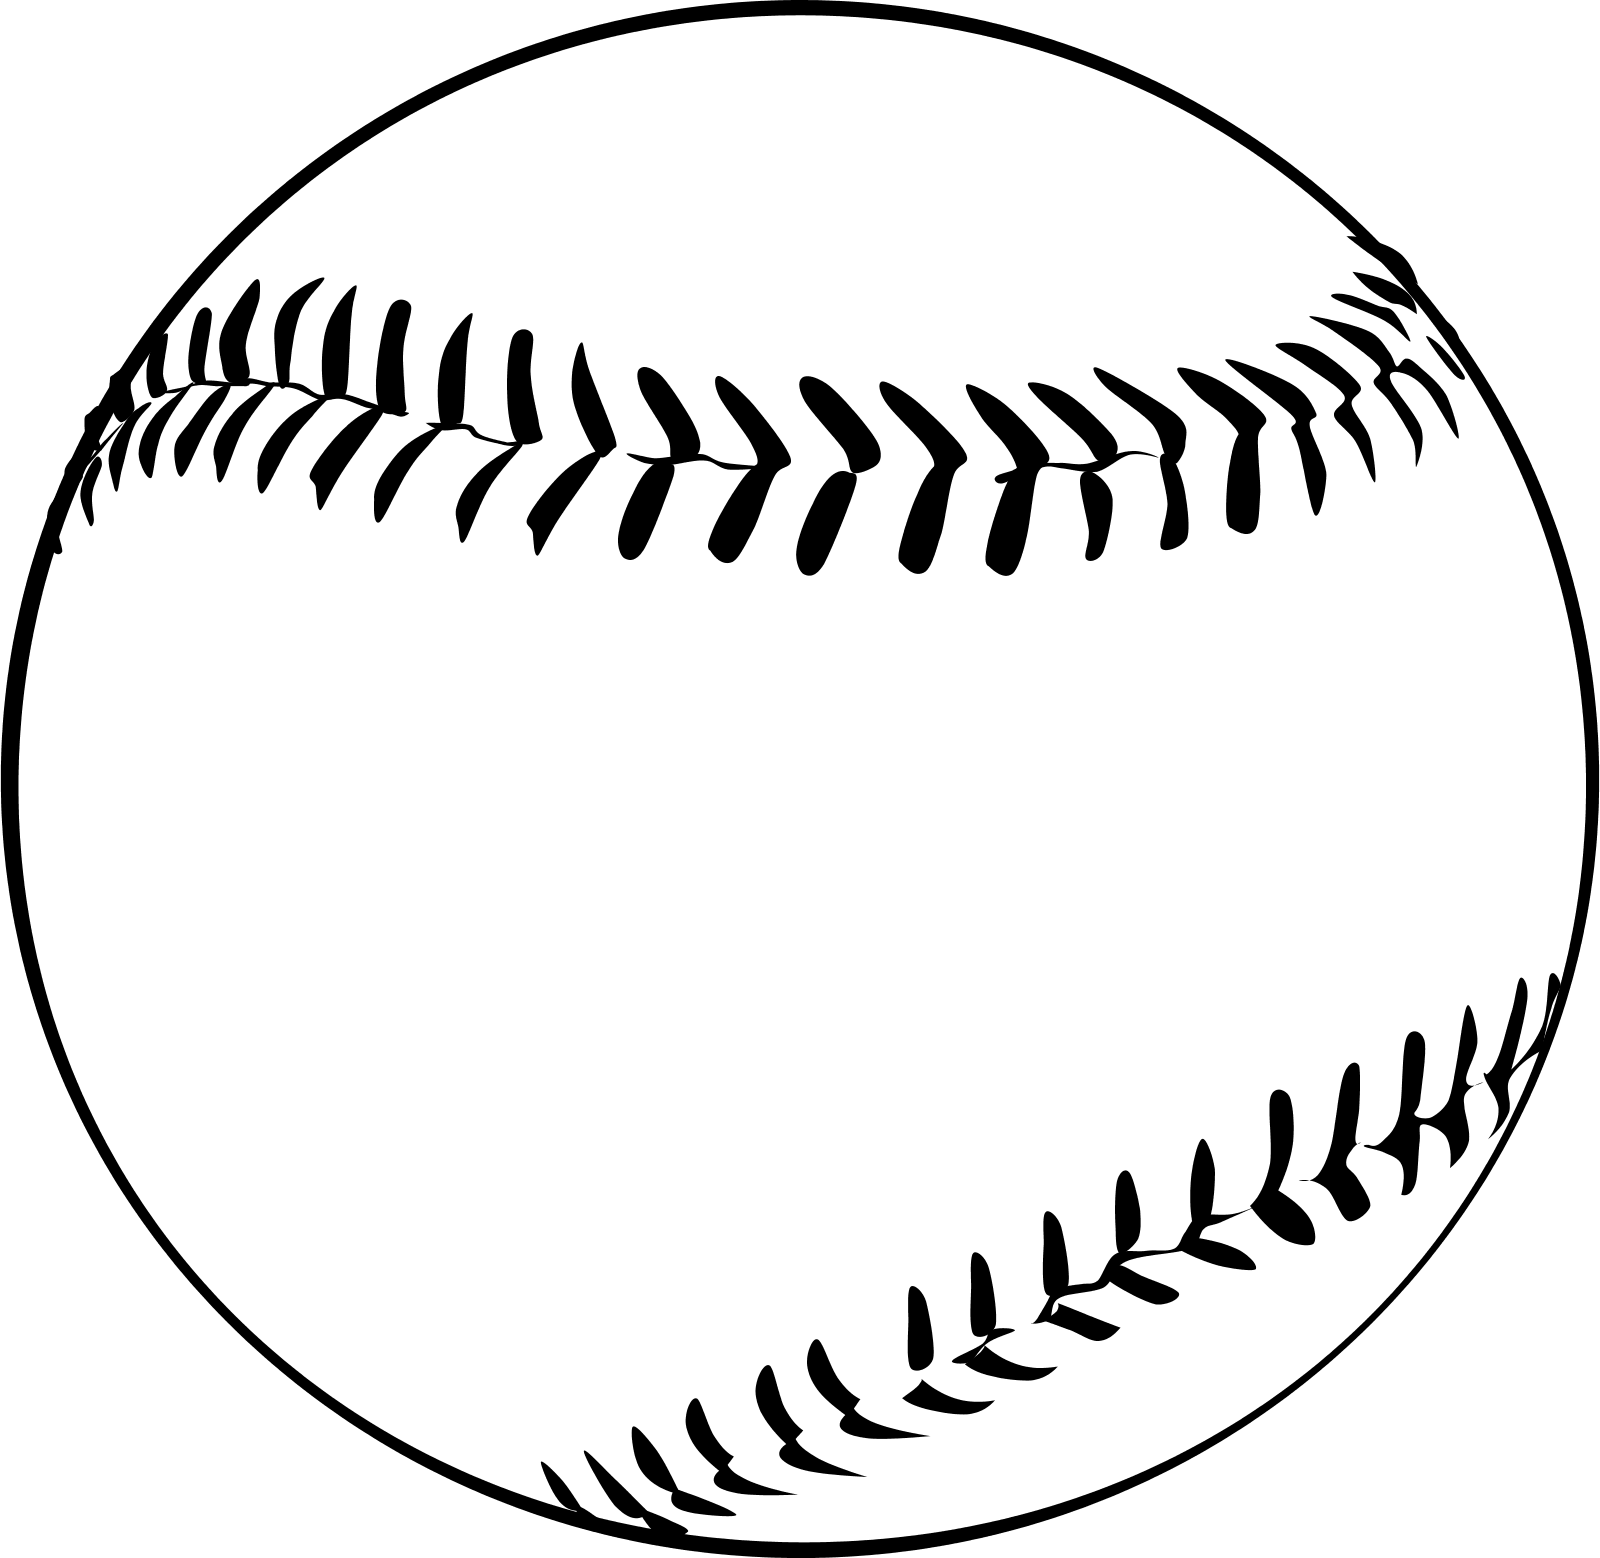 Baseball line clipart clip art black and white stock 28+ Collection of Baseball Ball Clipart Png | High quality, free ... clip art black and white stock